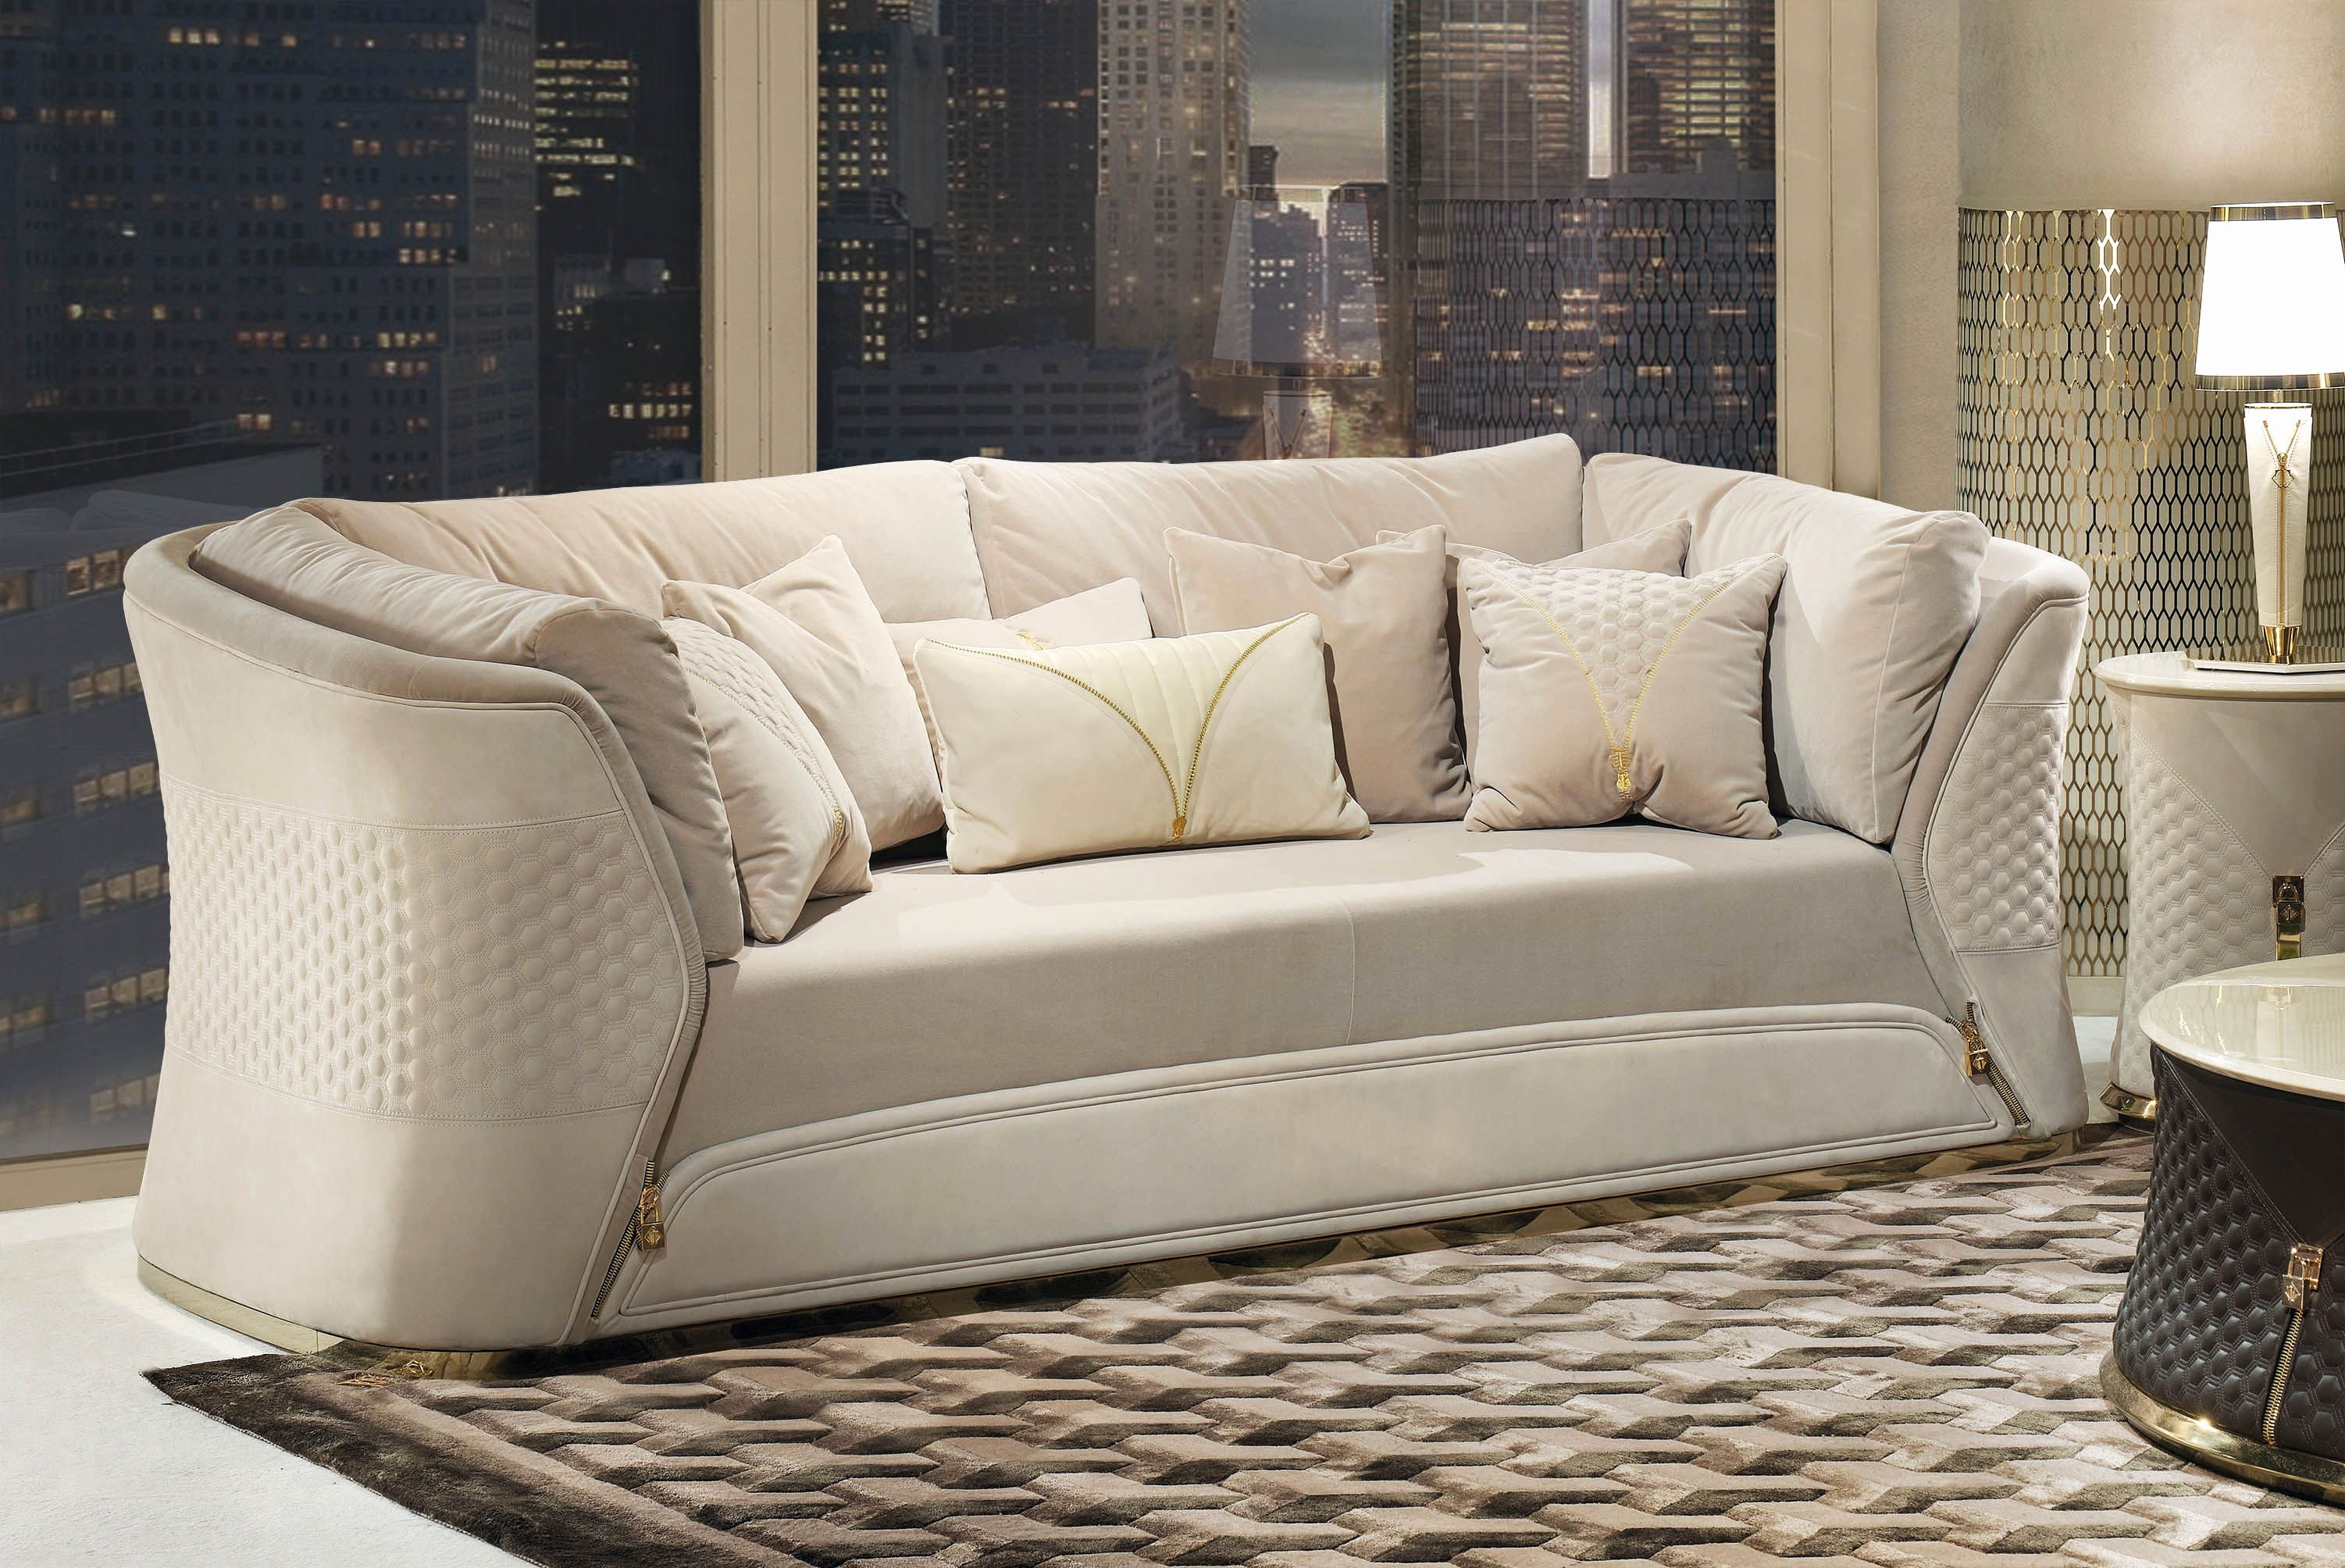 25 New Italian Furniture Brands Italian Sofa Designs Italian Furniture Living Room Sofa Design